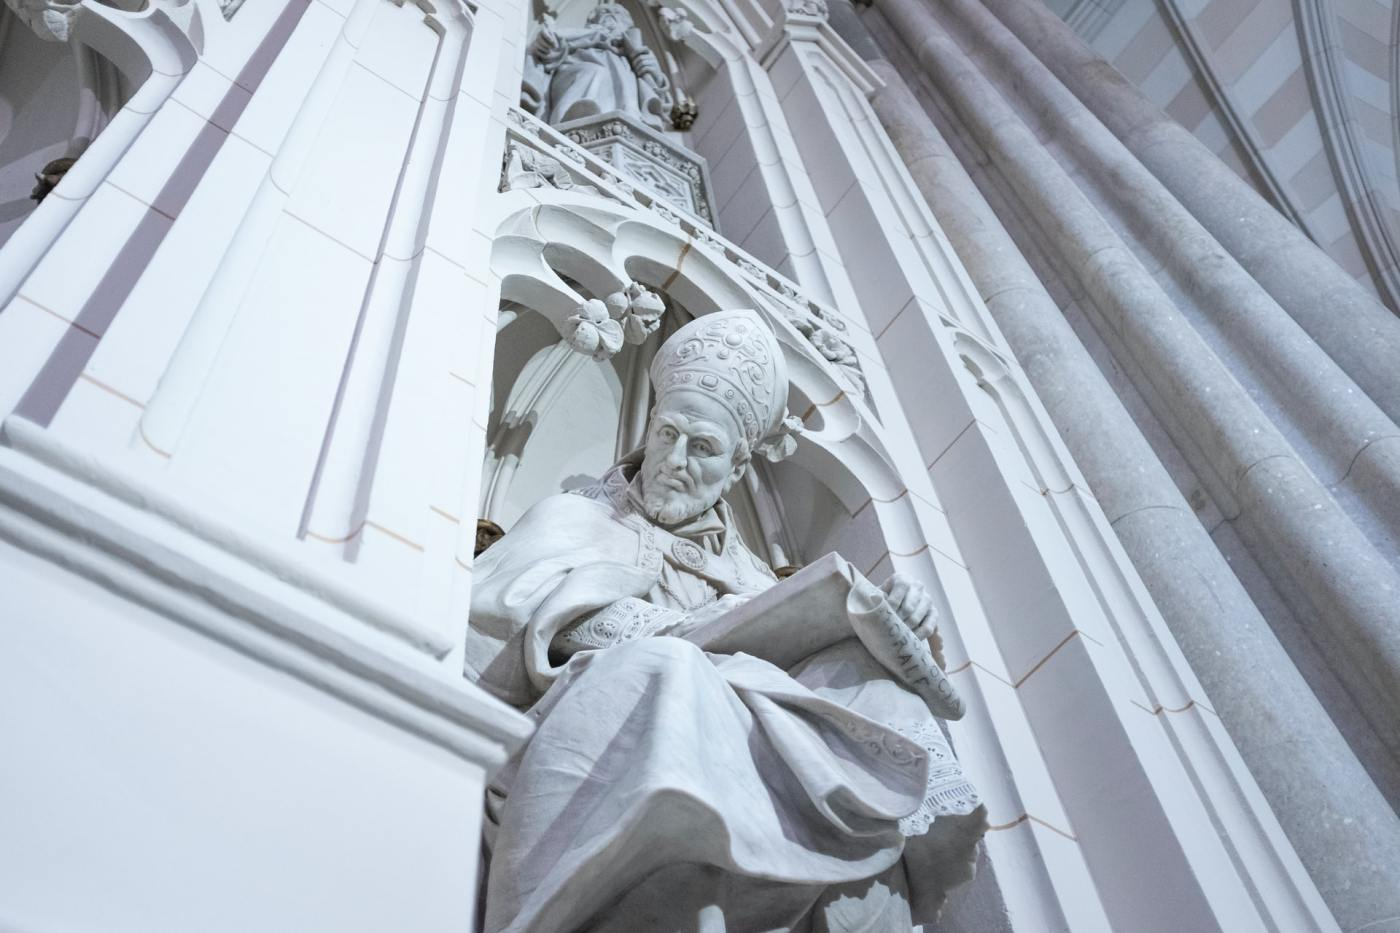 Marble statue carved out of a building of priest staring down upon the onlooker